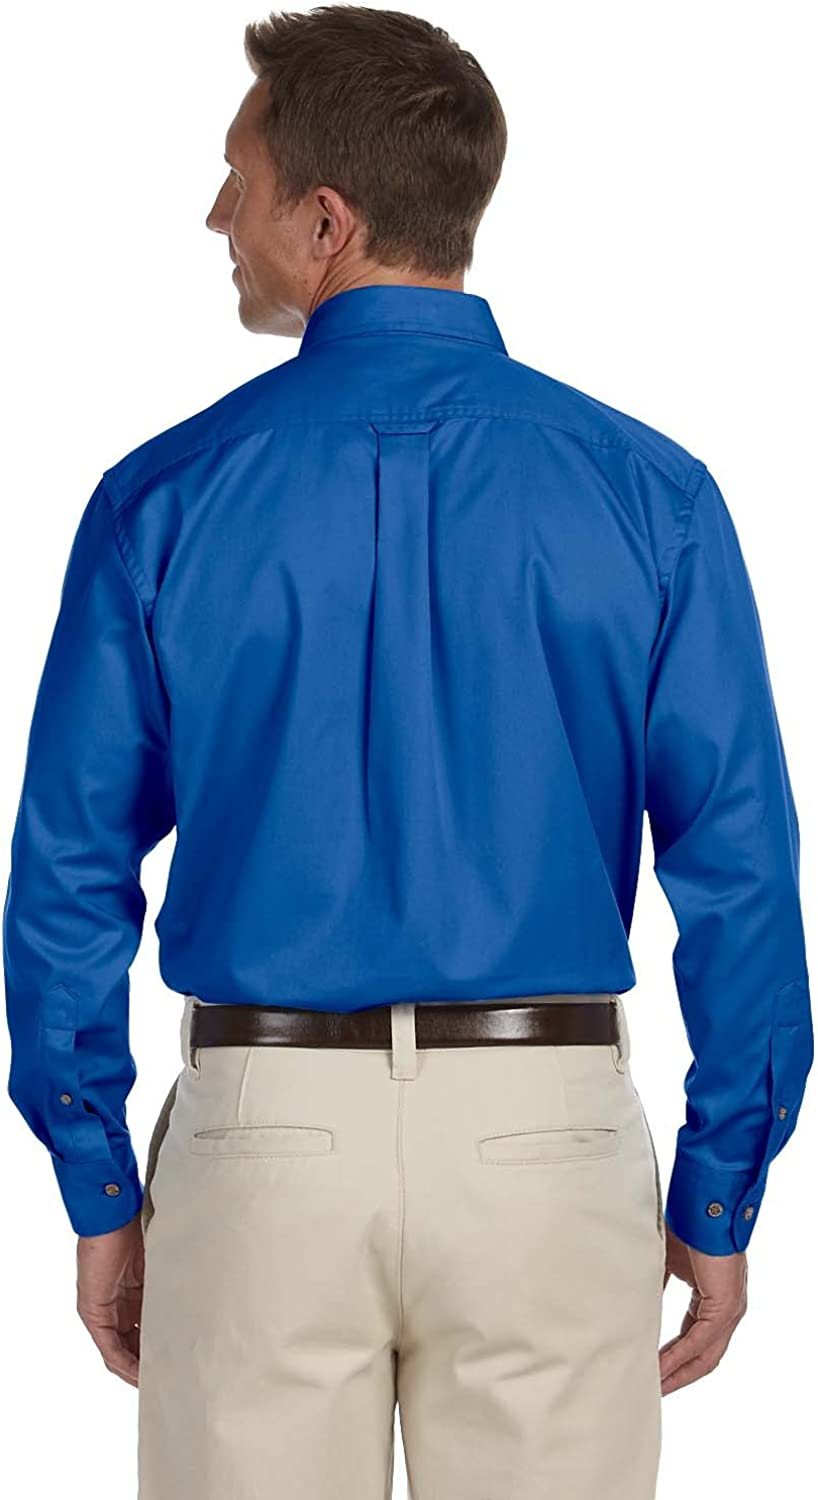 Easy Blend Long-Sleeve Twill Shirt with Stain-Release M500